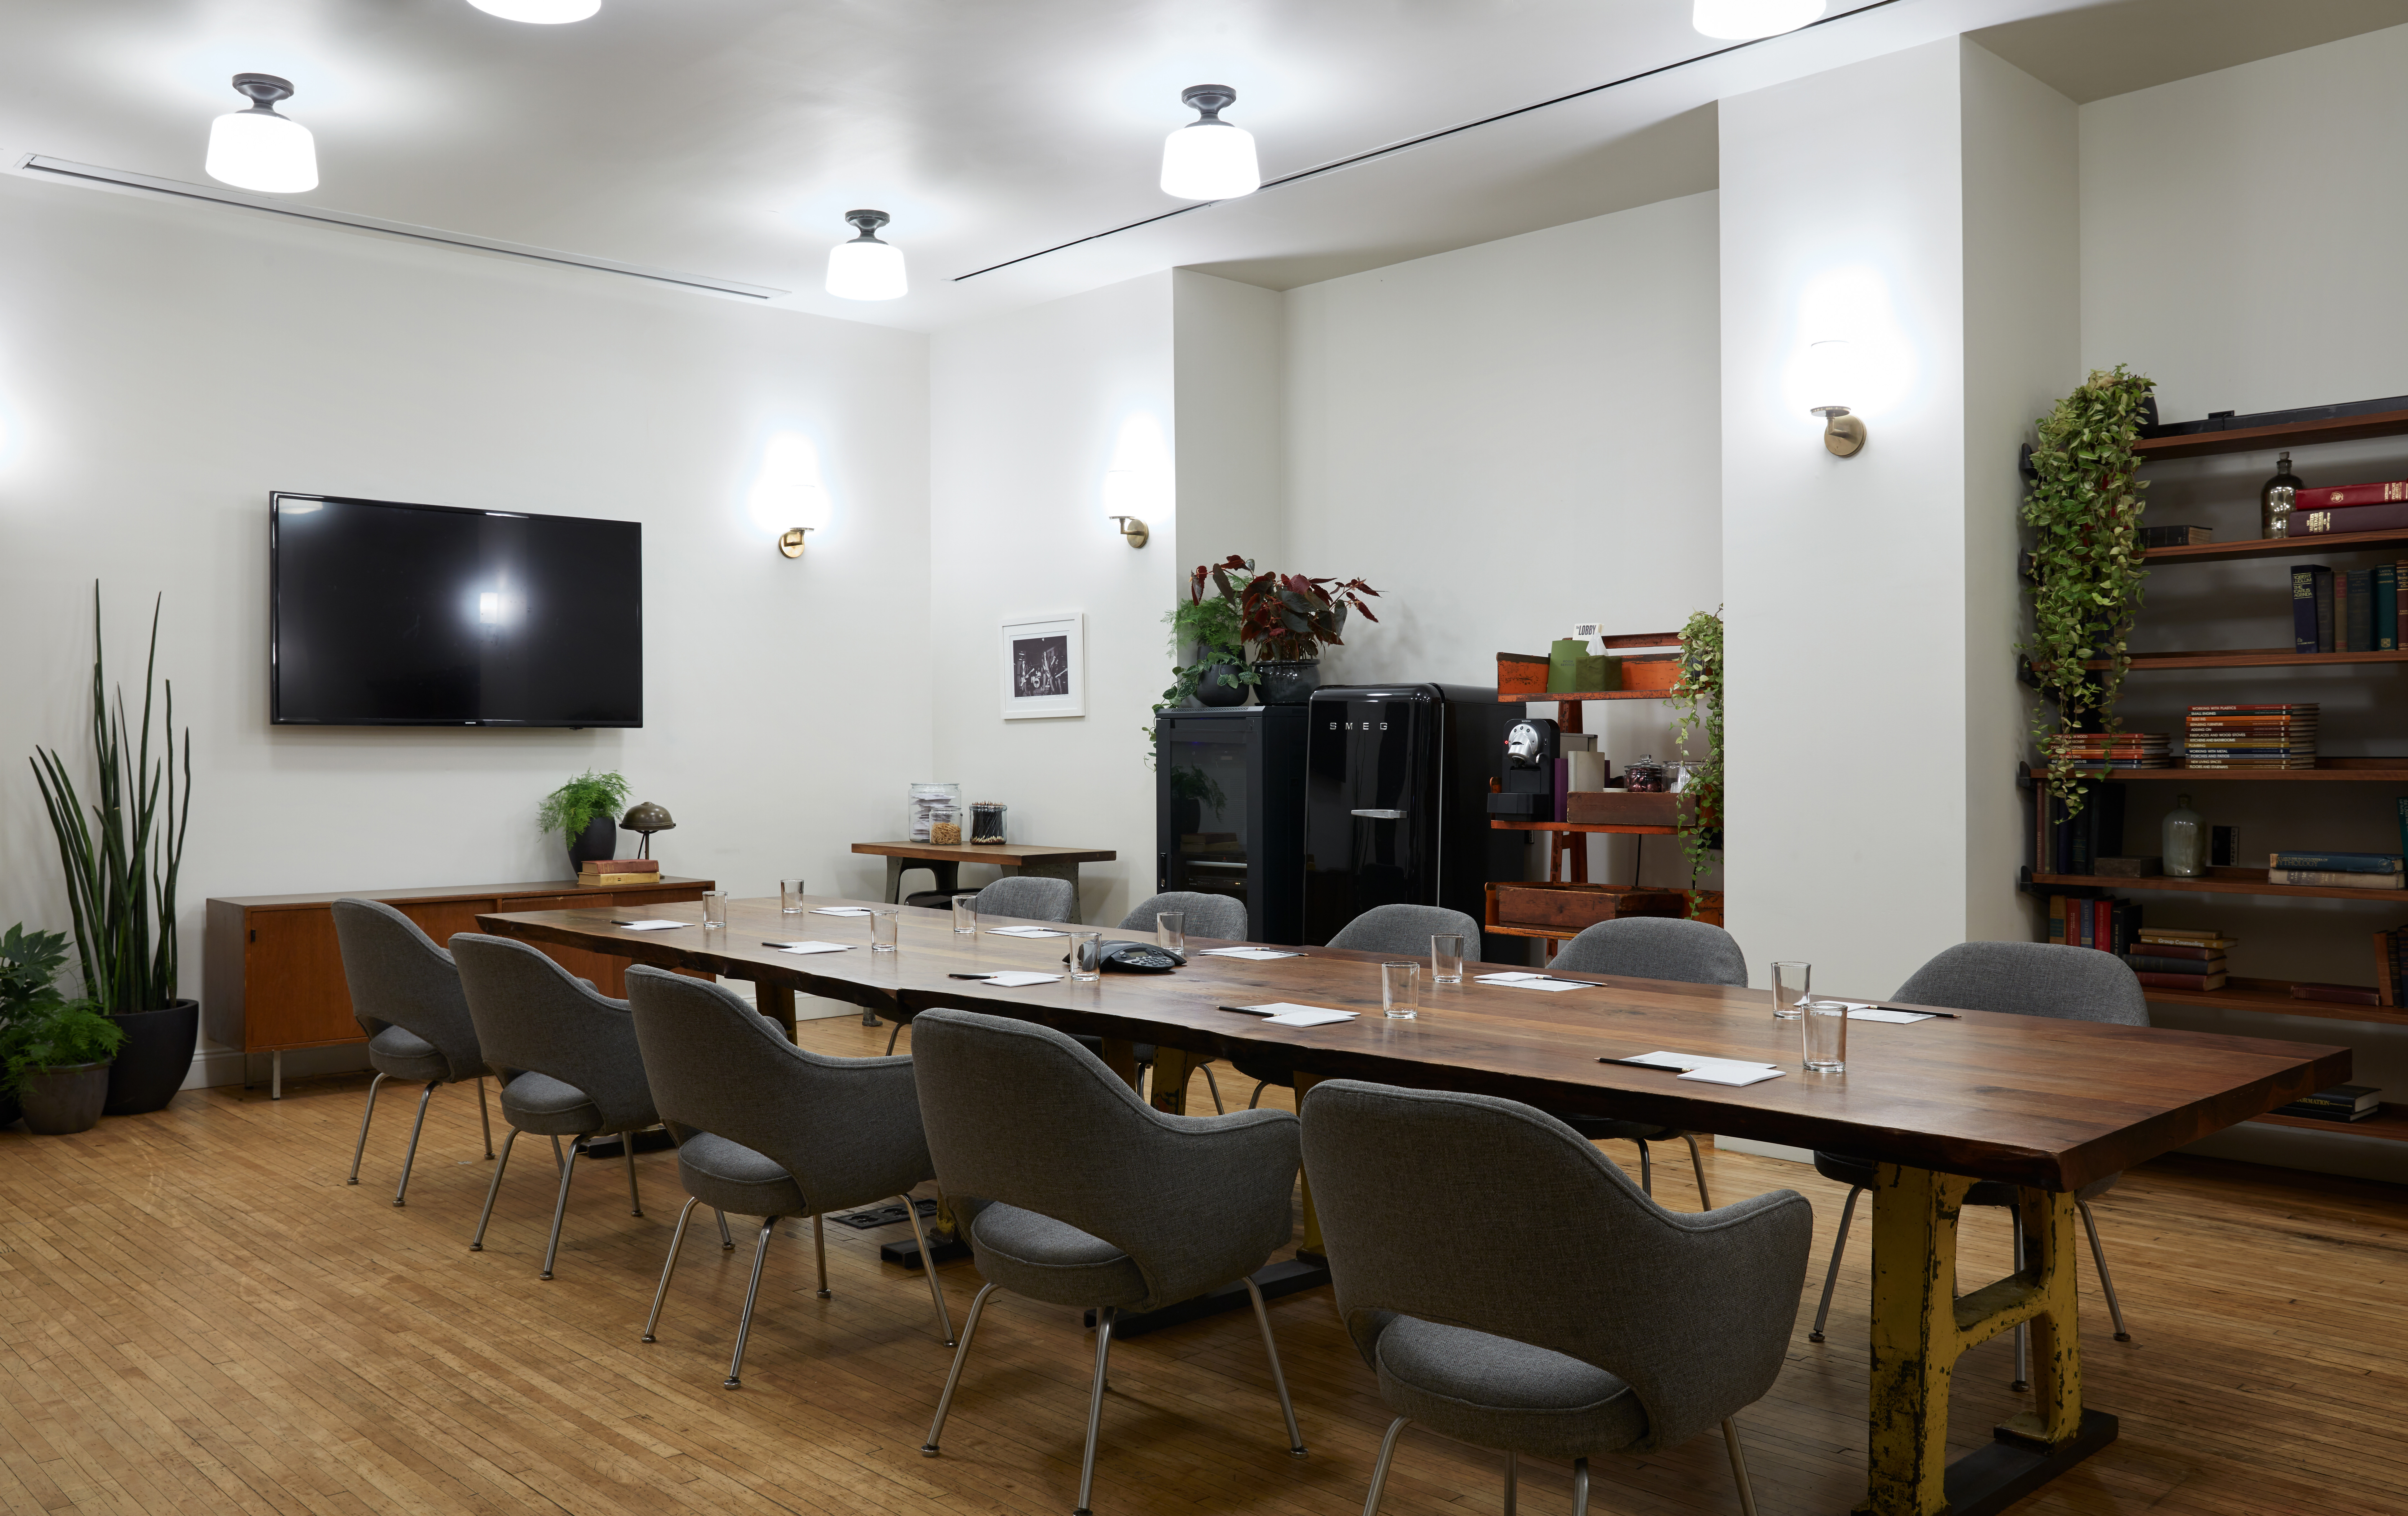 A meeting room with a large table and a TV